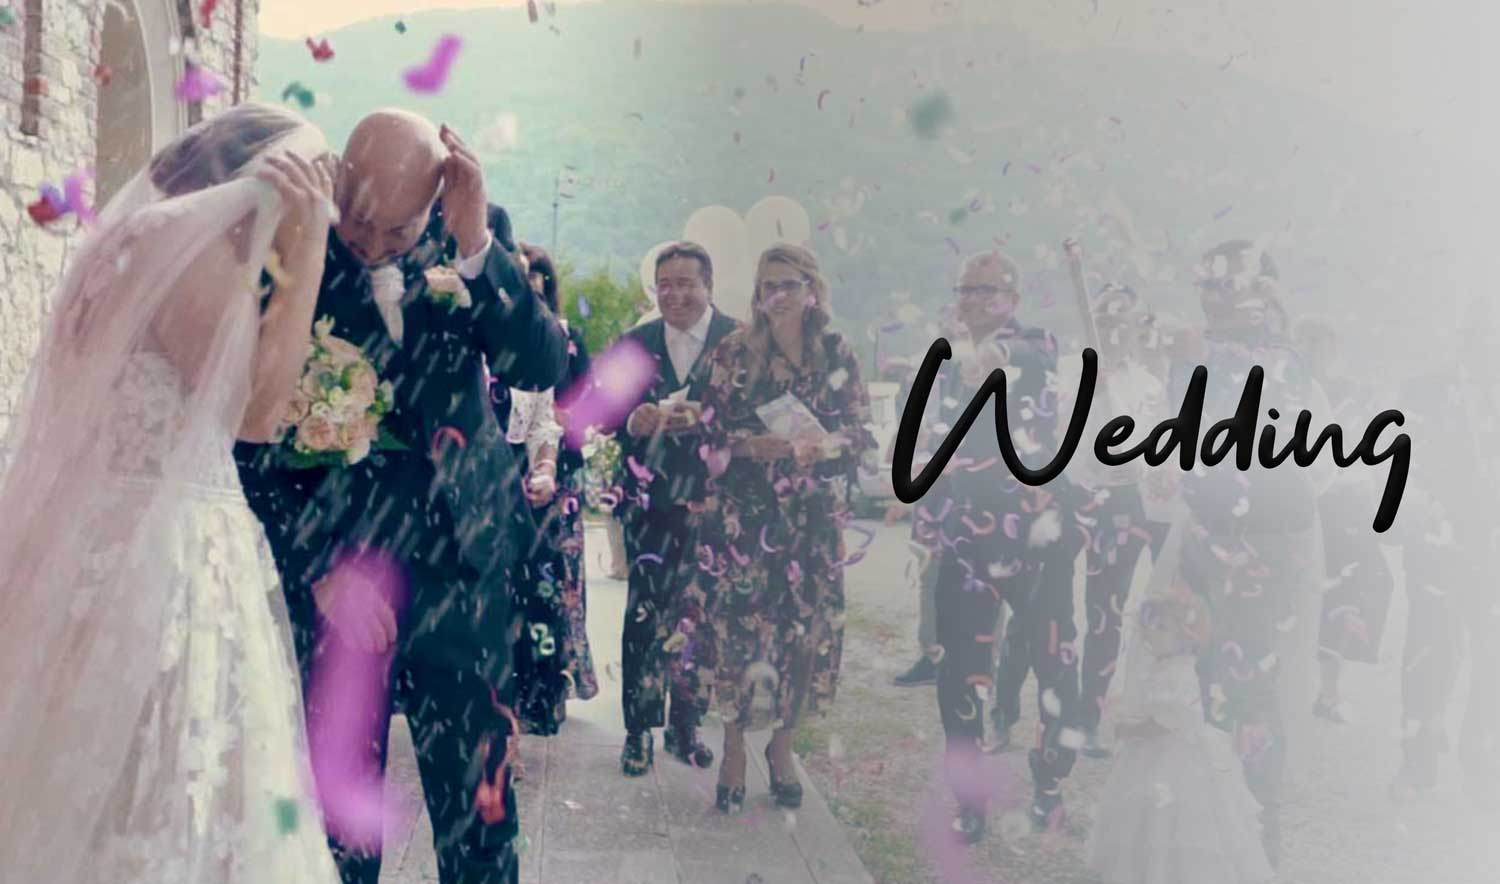 wedding • filmmaker • NP Media di Nicola Piccoli • 2021